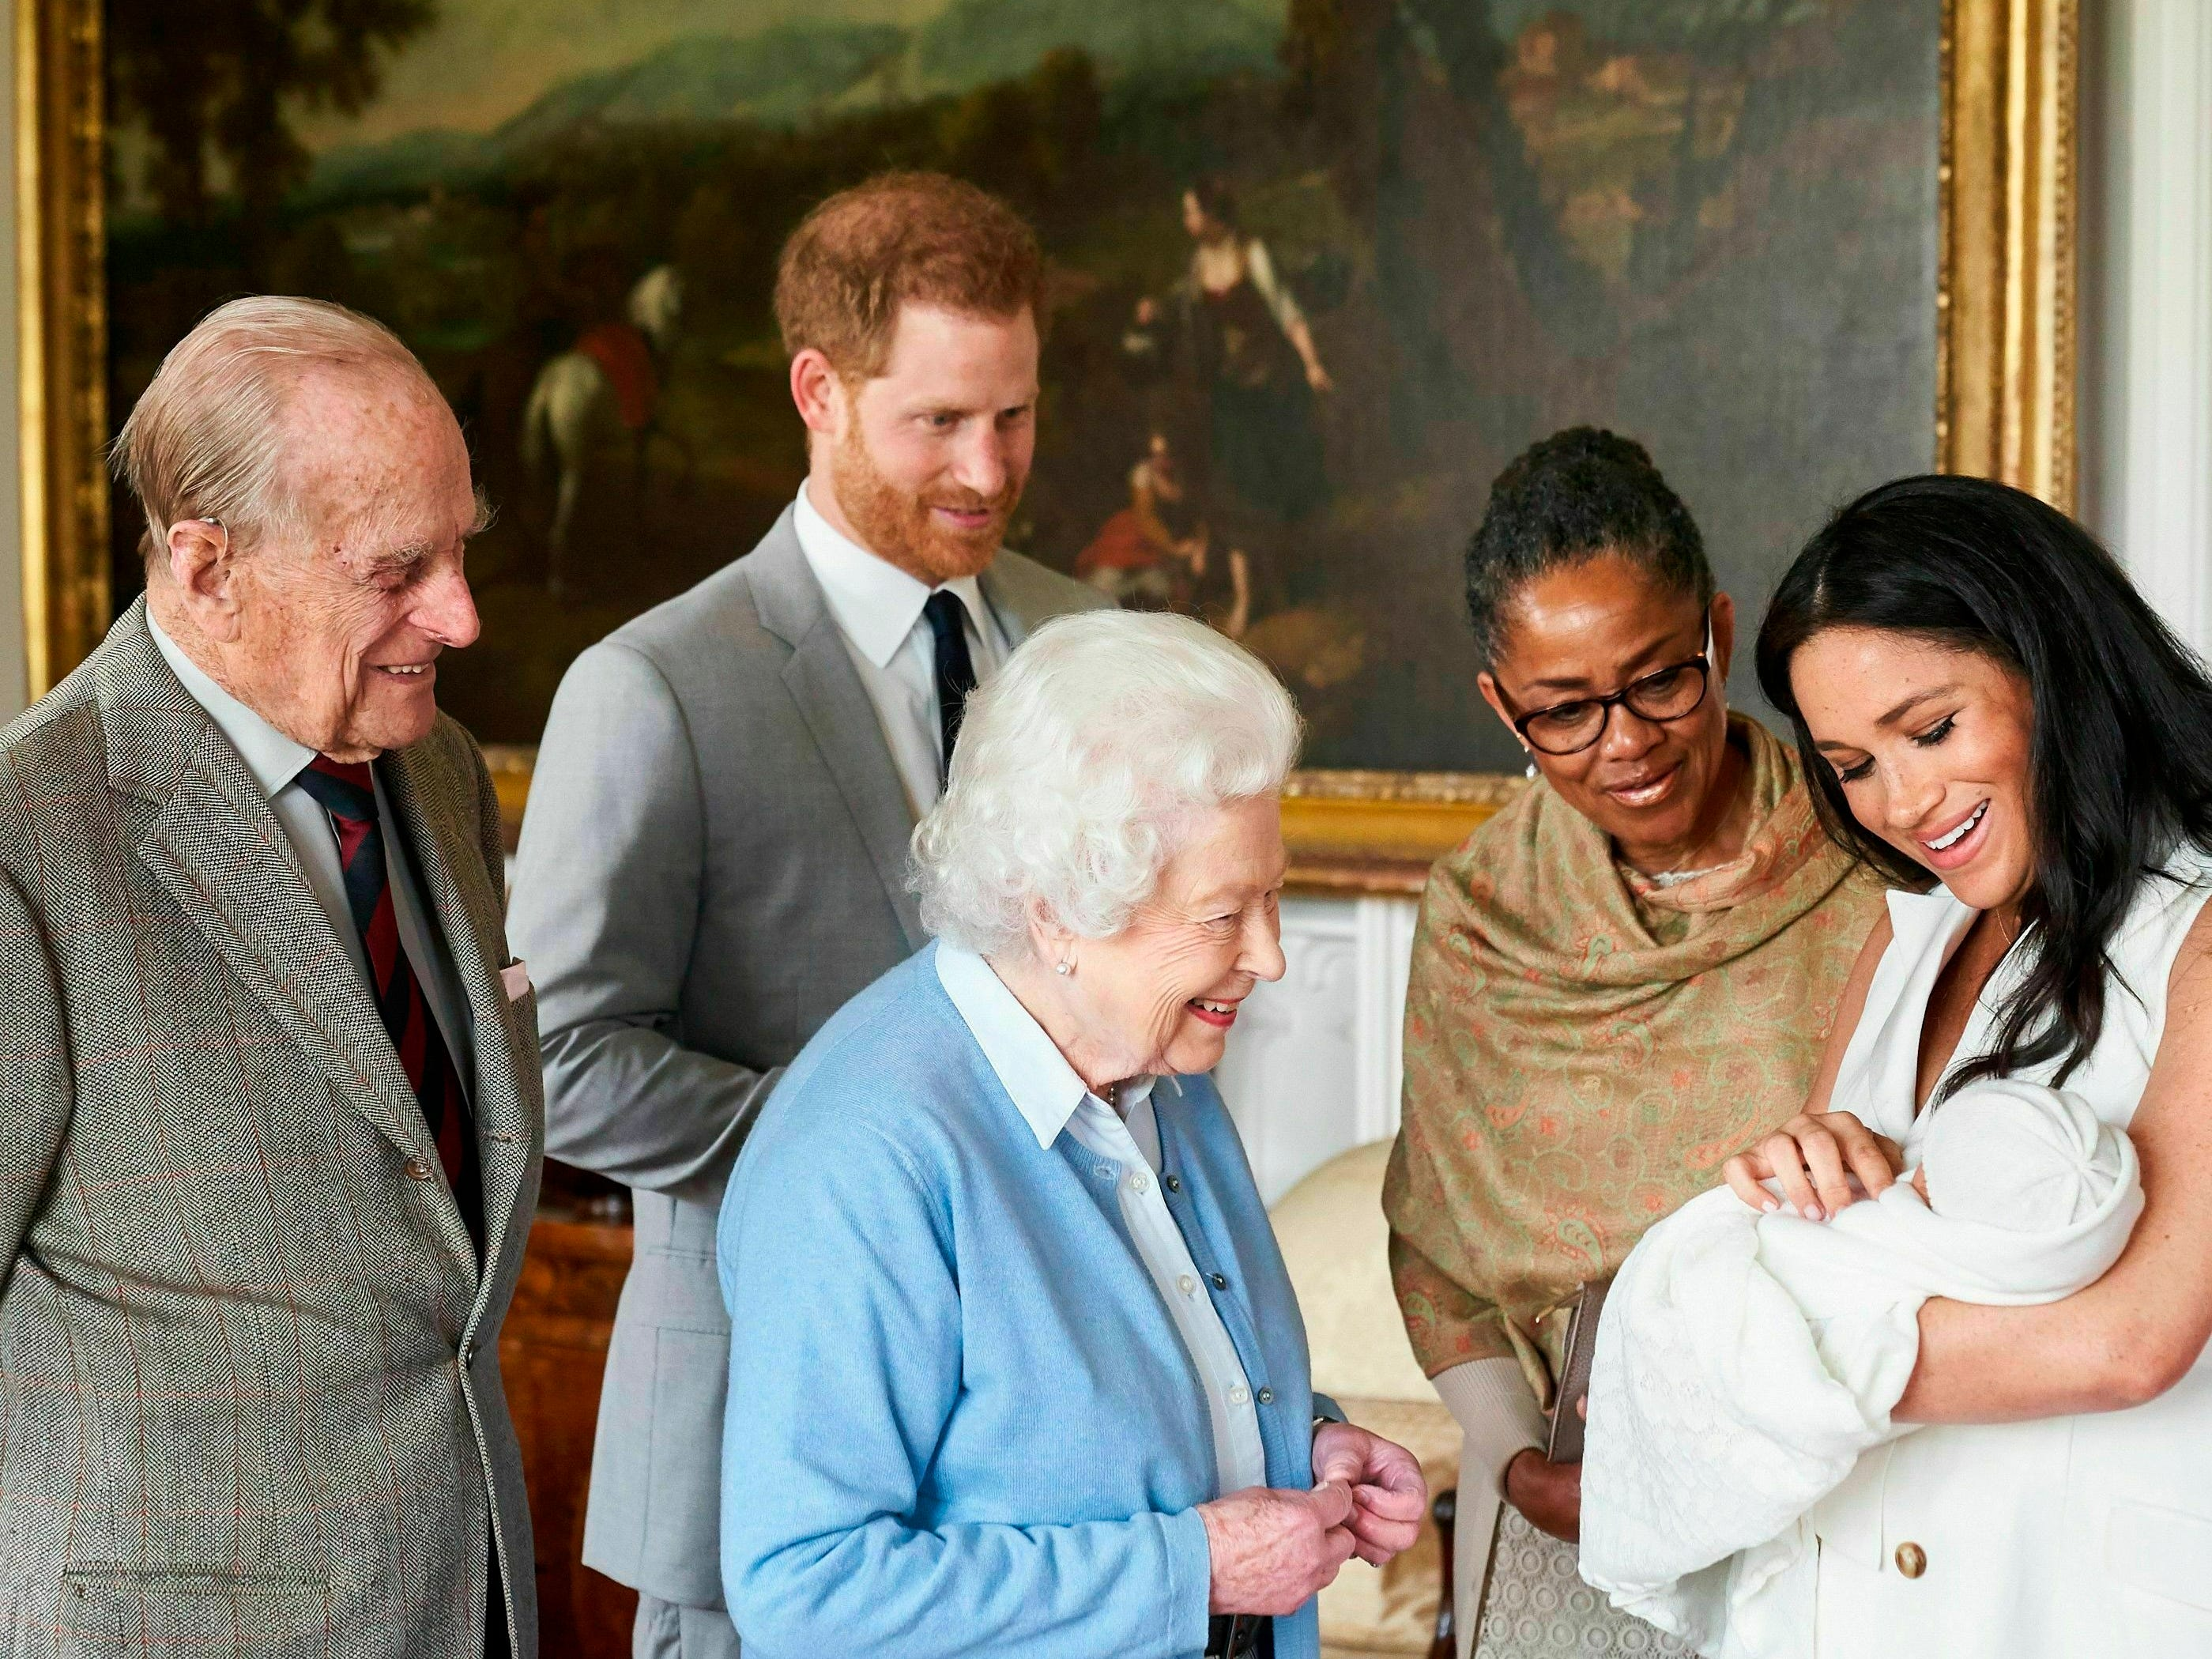 Britain's Prince Harry and Meghan, duchess of Sussex, with her mother Doria Ragland, show their newborn son to Queen Elizabeth II and Prince Philip on Wednesday May 8, 2019 at Windsor Castle, England. Prince Harry and Meghan have named their son Archie Harrison Mountbatten-Windsor.